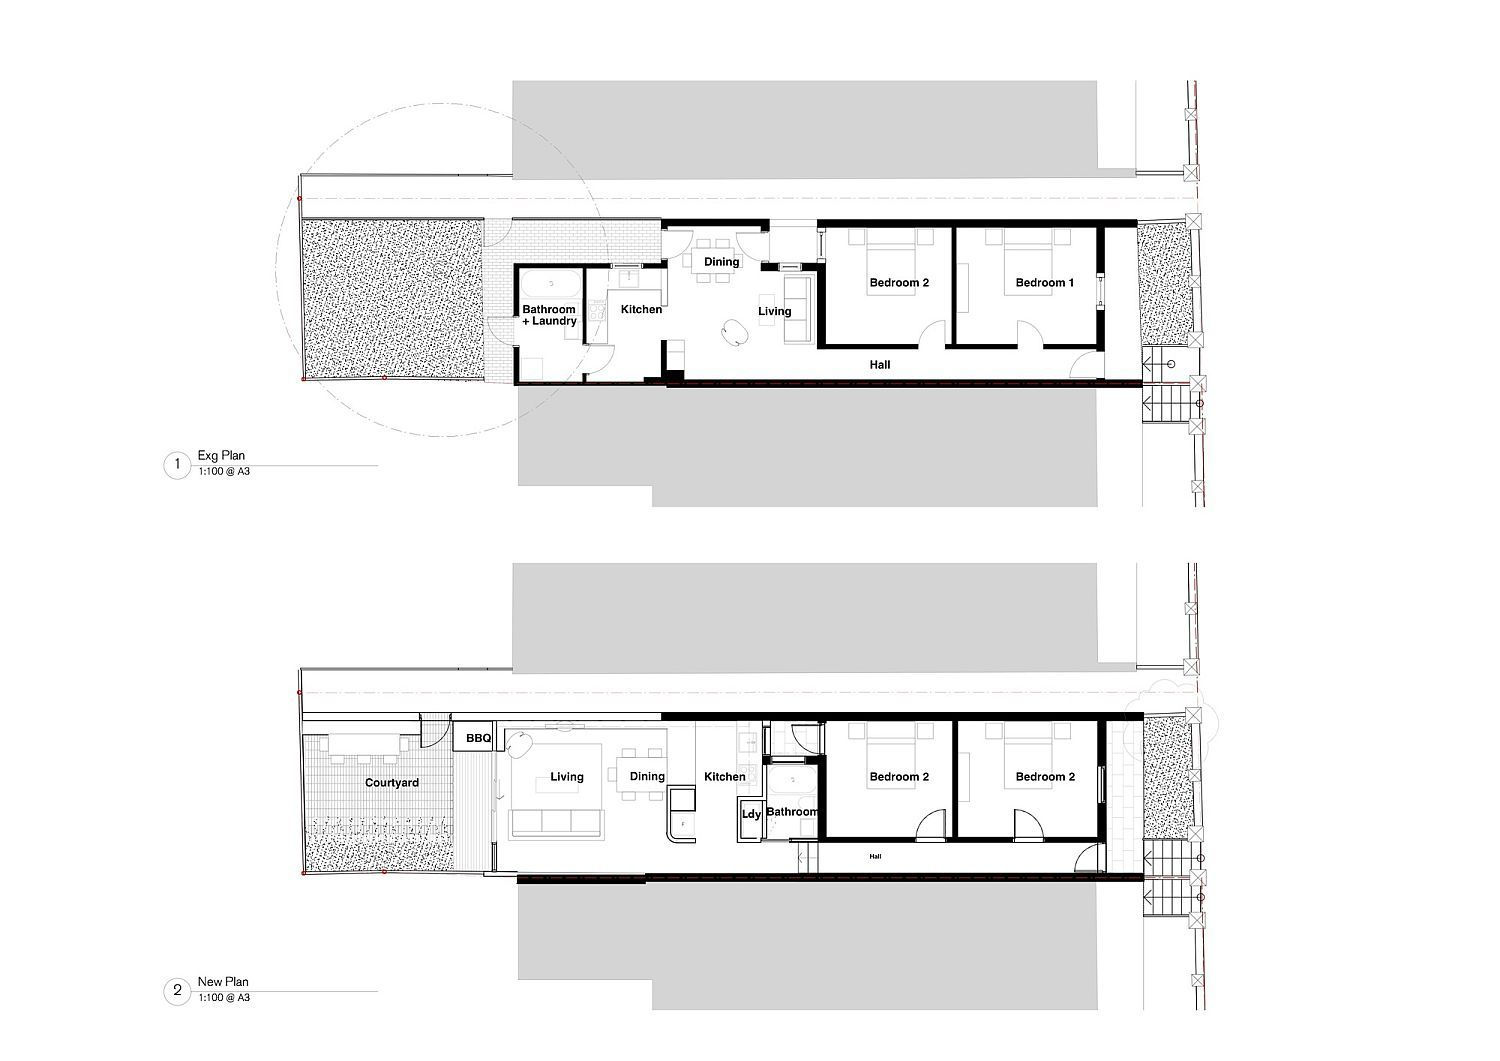 Floor plan of the Brick House before and after renovation – Bastian Homes Floor Plans